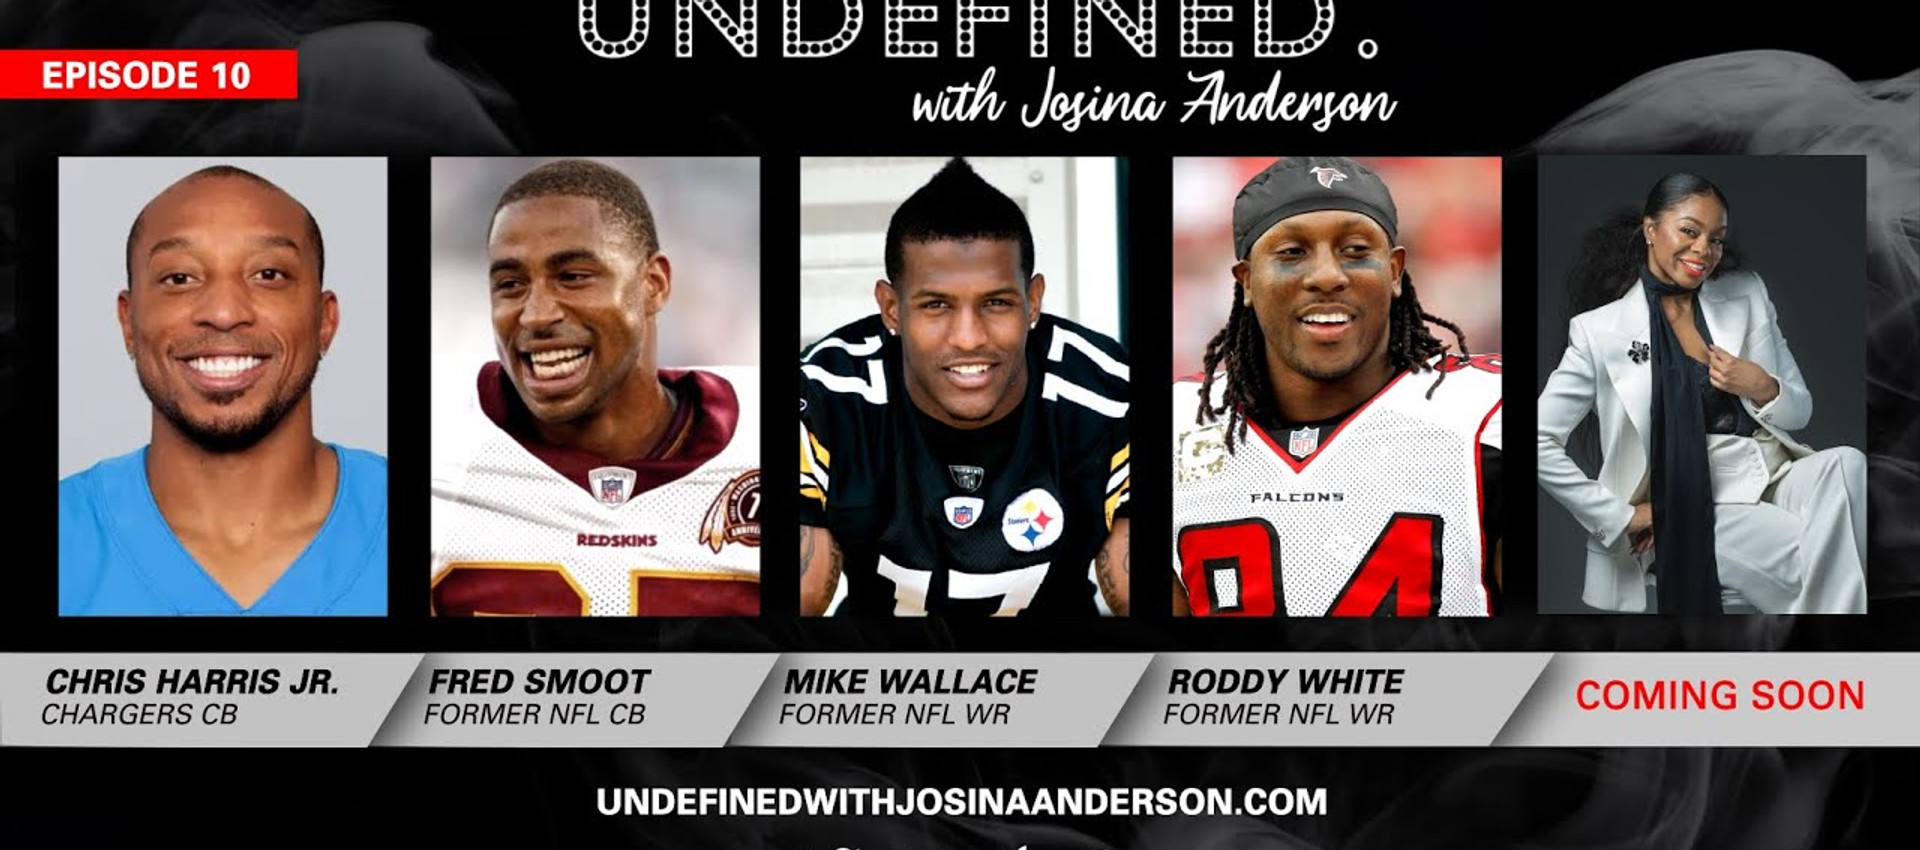 Episode 10: Chris Harris Jr. Fred Smoot, Roddy White, Mike Wallace